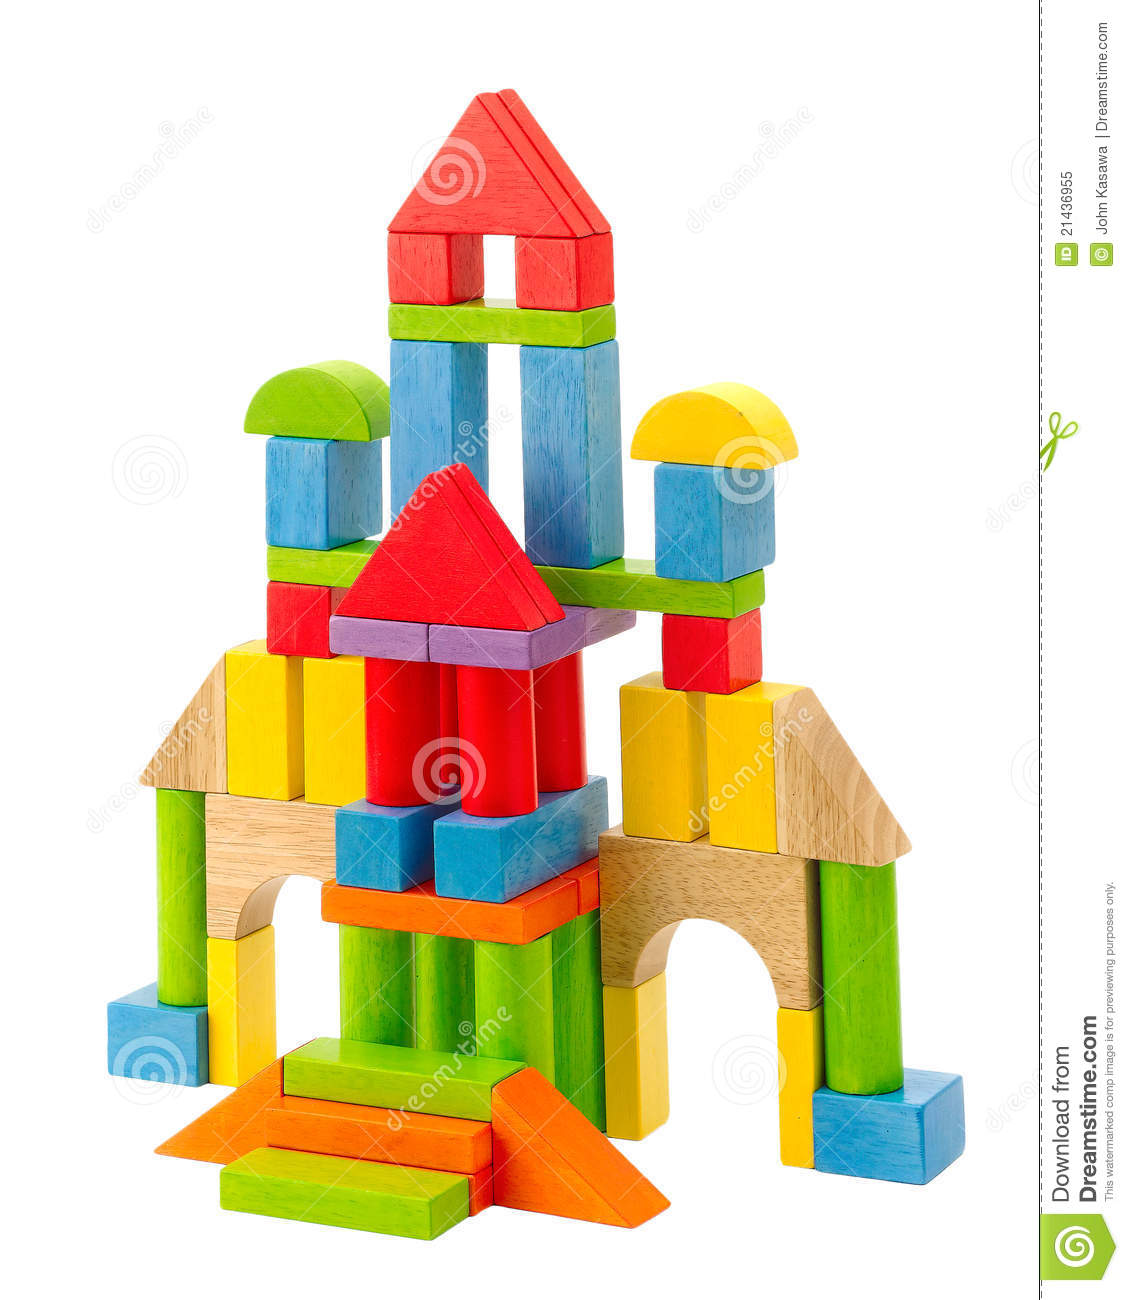 Best Castle Toys For Kids : Colorful wooden toy castle stock image of childhood